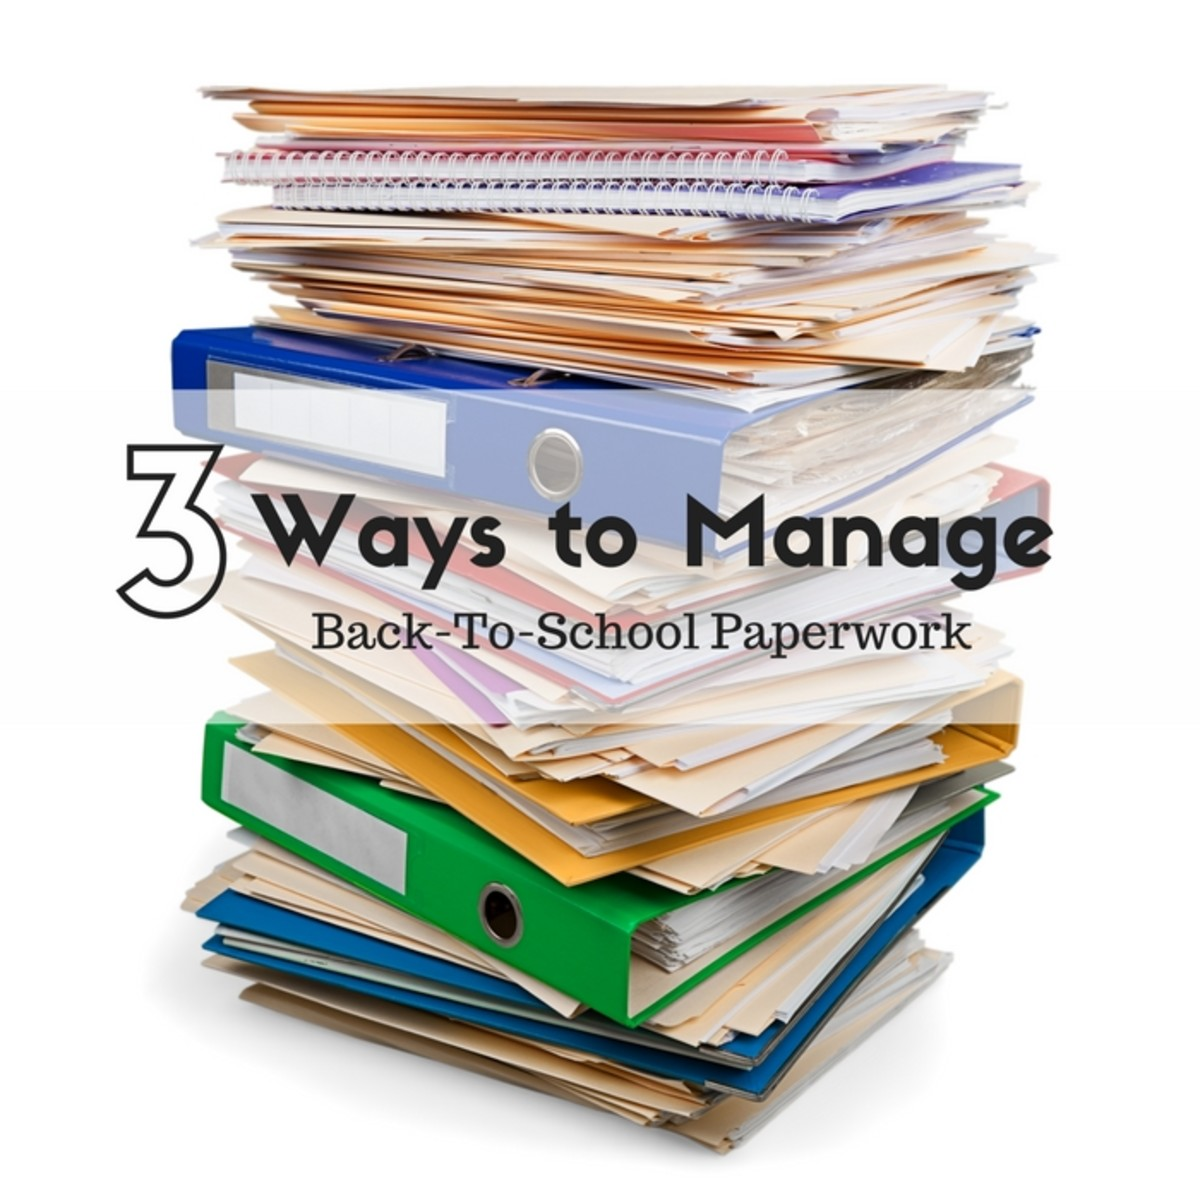 3 Ways to Manage the BTS Paperwork